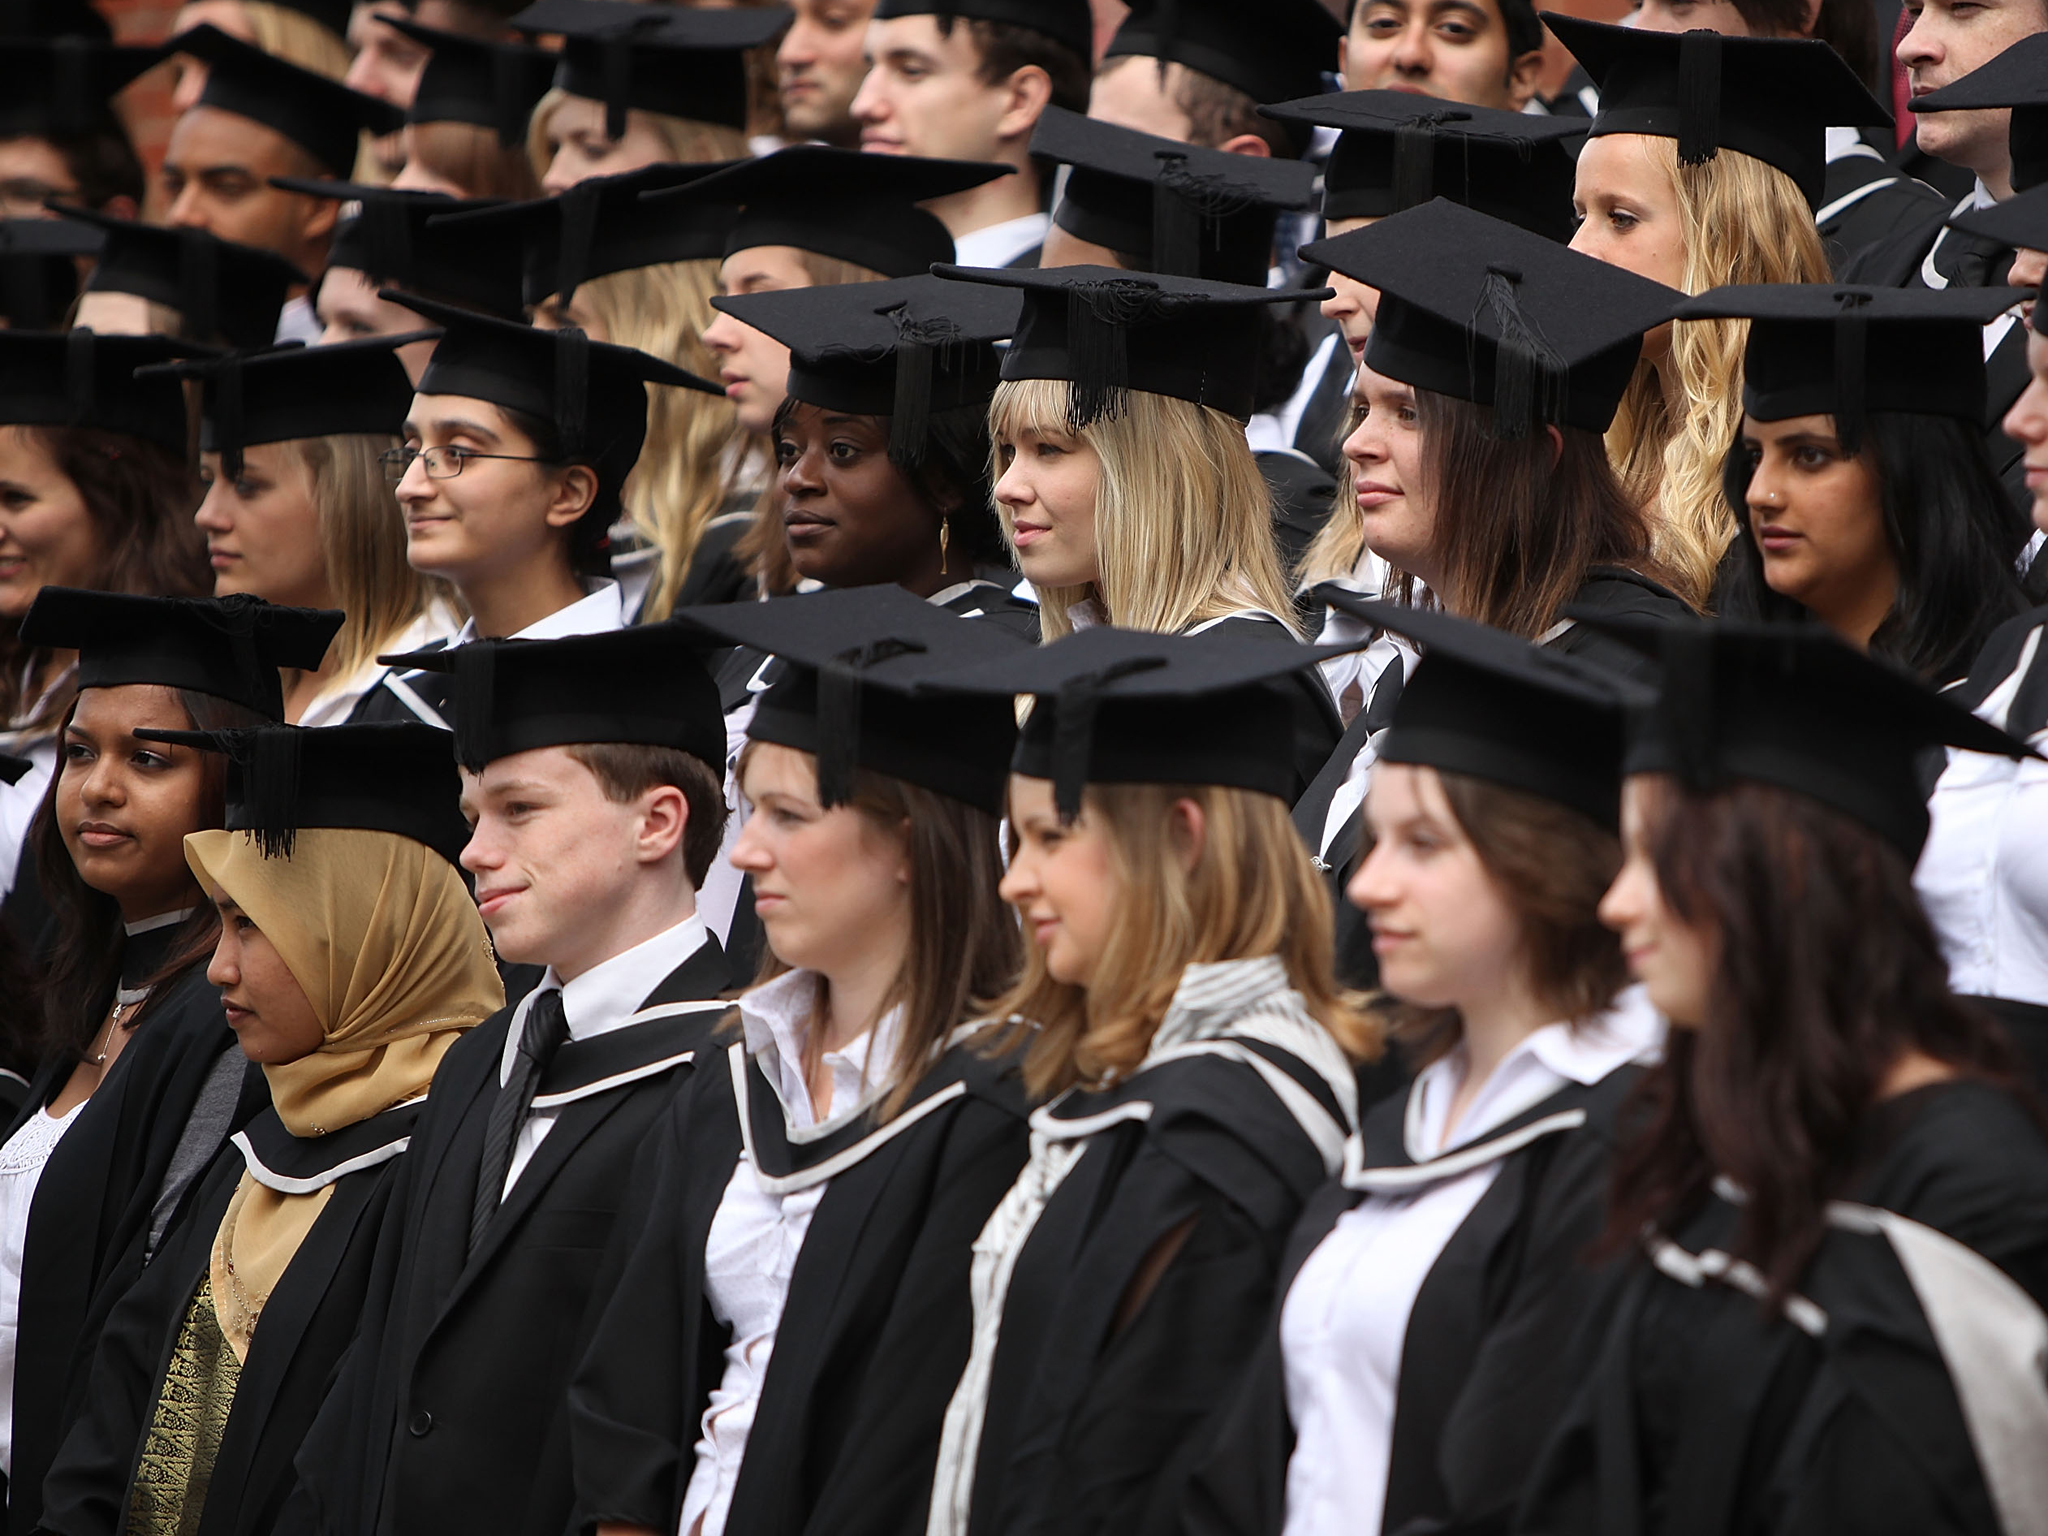 10 Benefits For International Students When Acquiring Higher Education In The UK